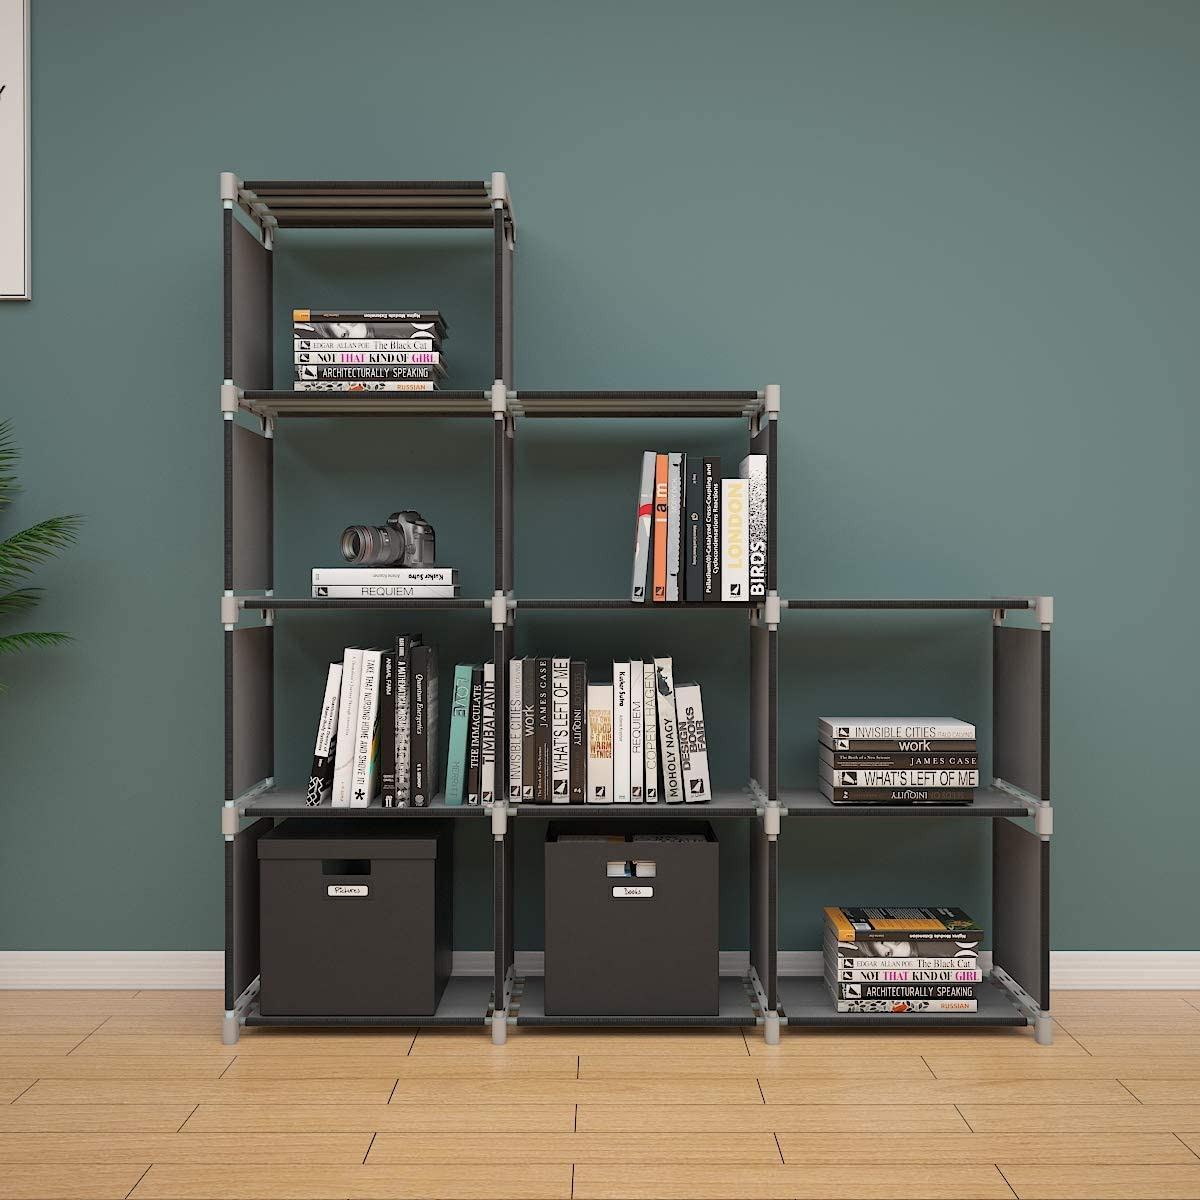 Soges 3-Cube Storage Organizer Storage Shelves Bookcase Bookshelf Clothes  Cabinets Storage Cubes Bins Cubbies Shelving for Bedroom Living Room Office